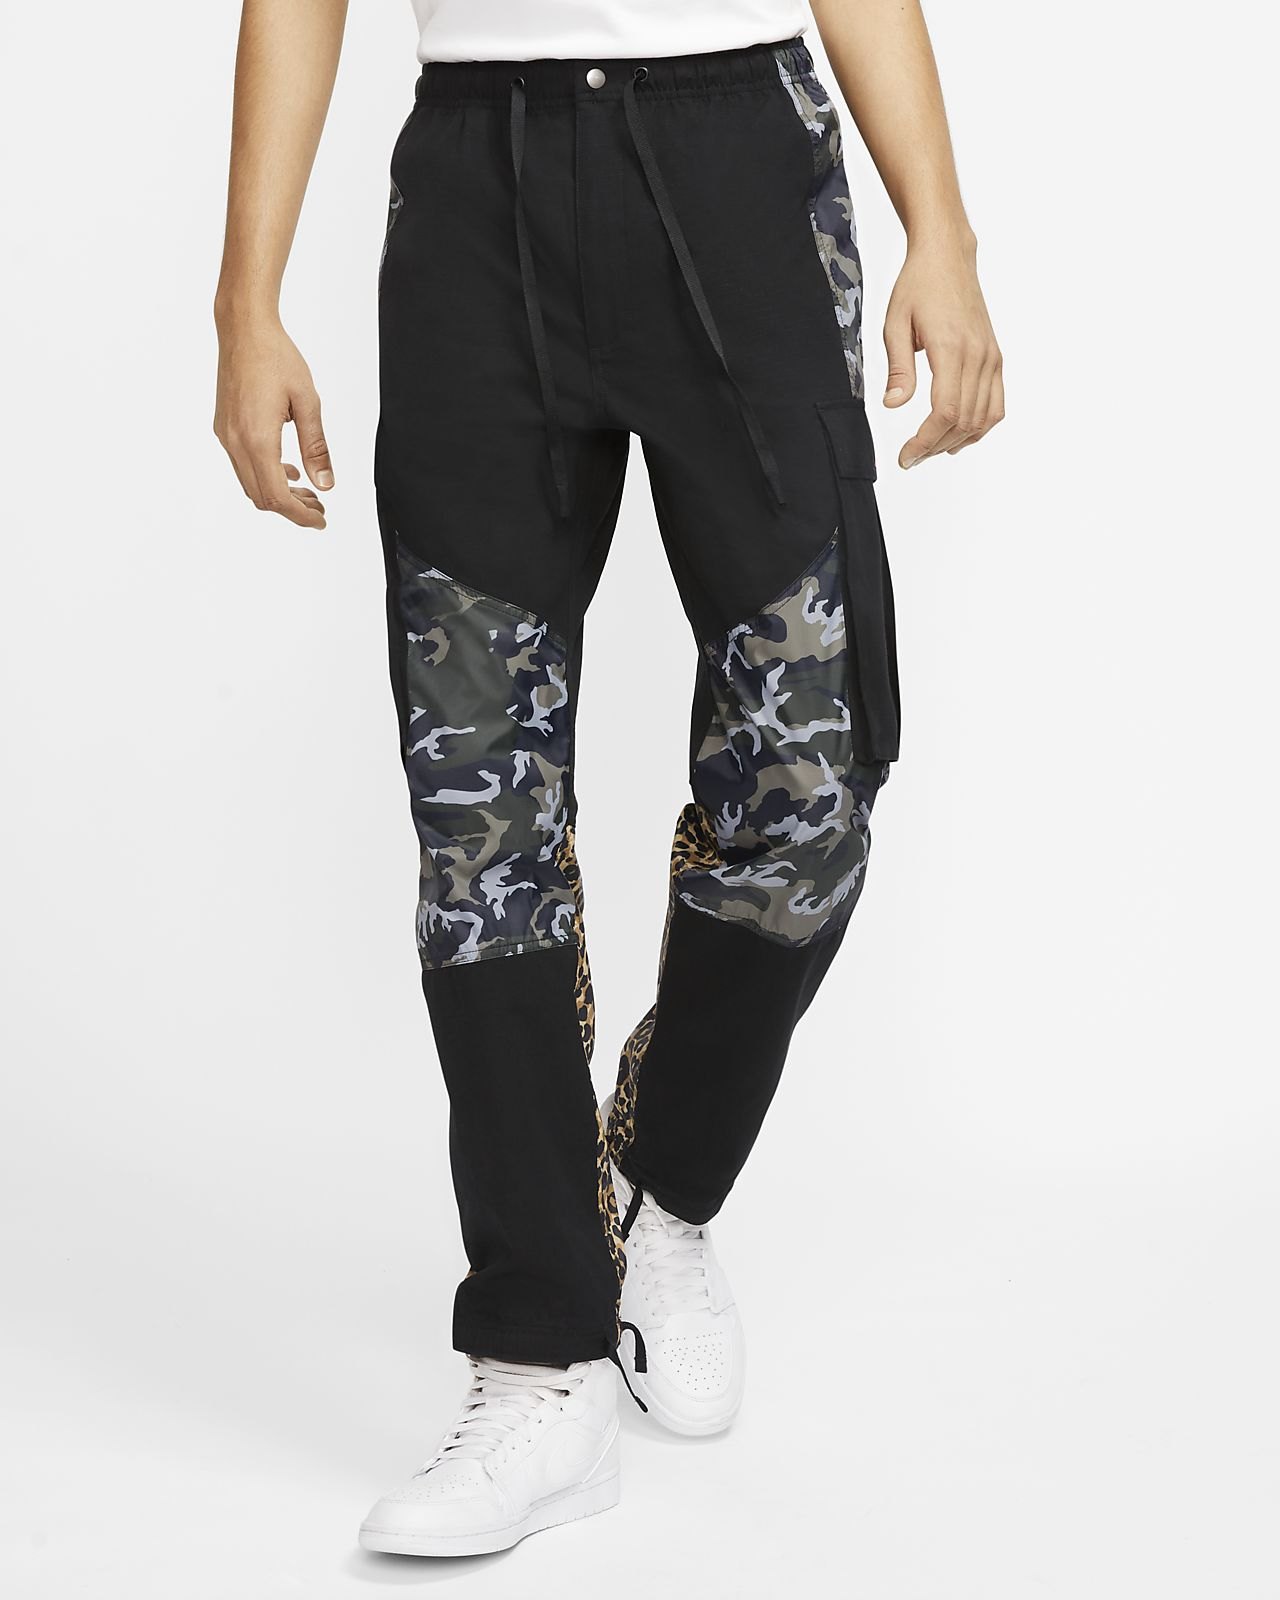 Pantalon Jordan Animal Instinct pour Homme